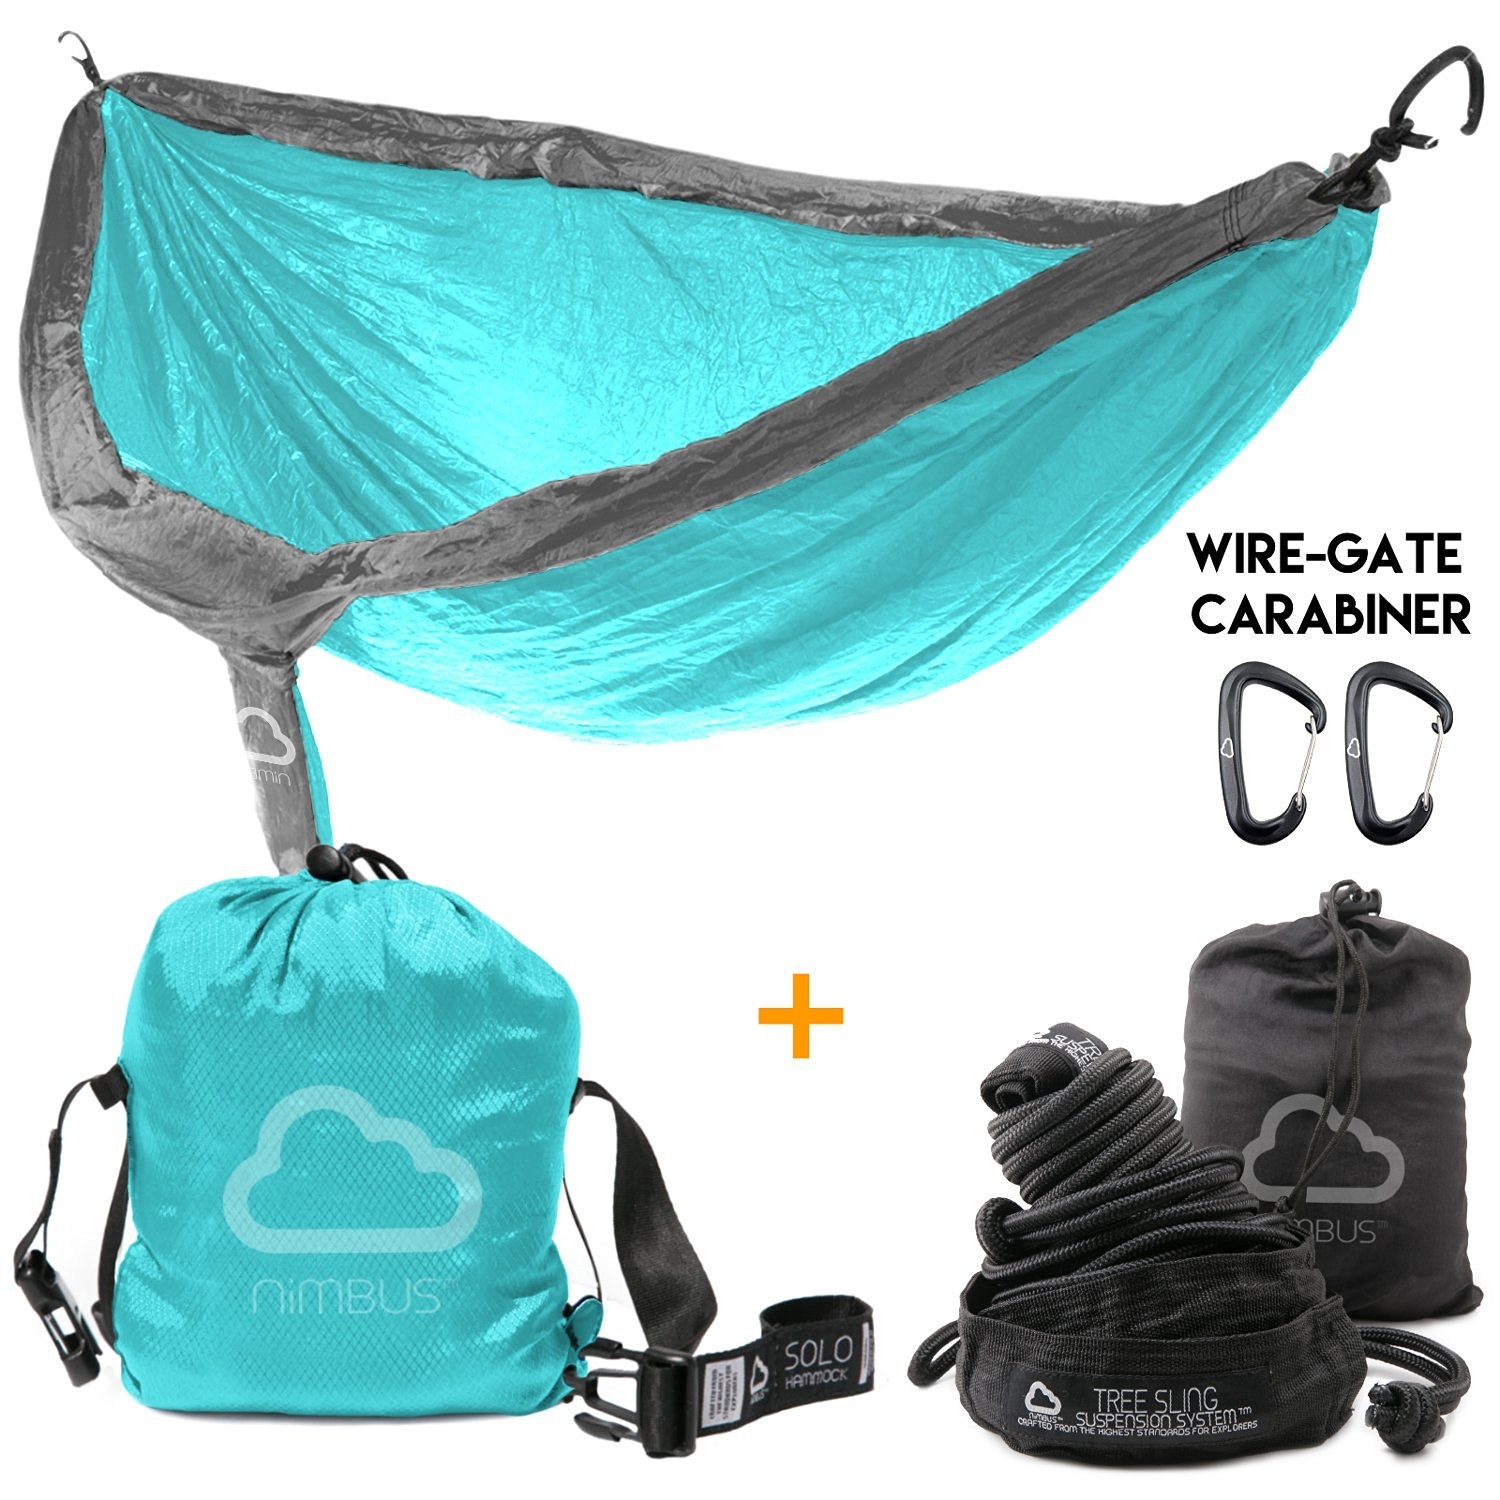 HOLIDAY SALE!!! Ends Today! - Outdoor Camping Nylon Hammock with Suspension Kit & Premium Carabiner [Complete Hammock Set] - Designed in USA | Top Rated | Built to Last | by Nimbus Hammock